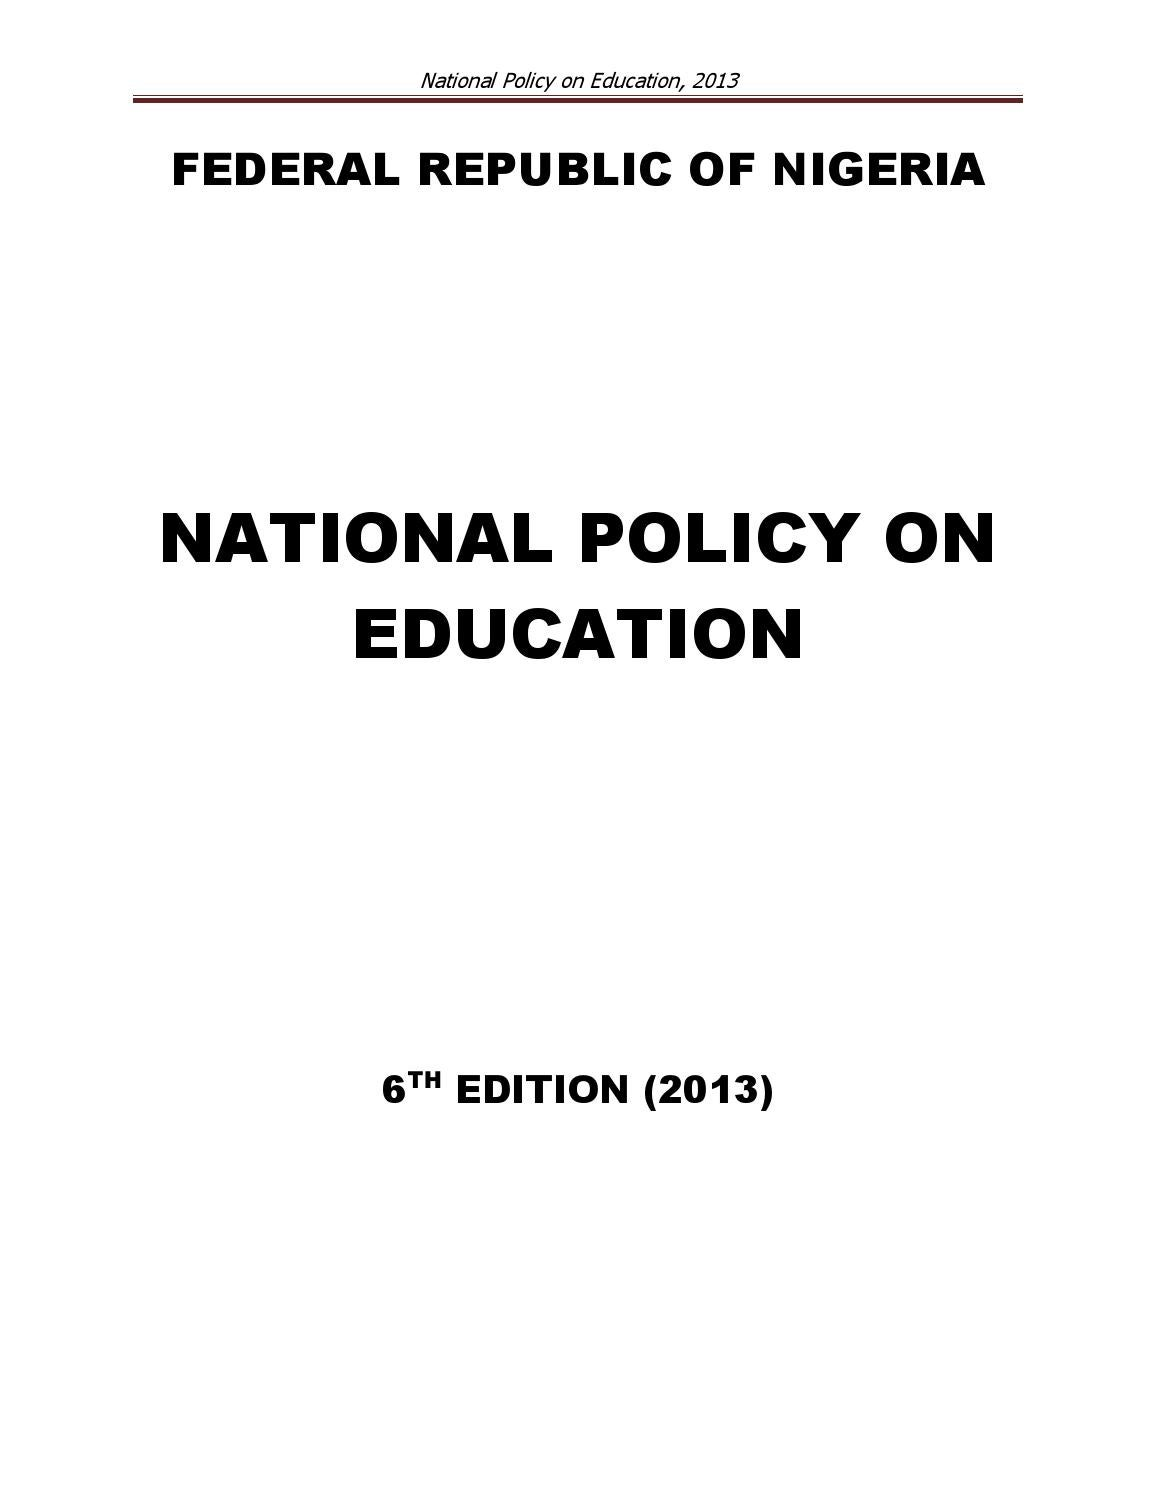 national policy on education National education policy 2009: transform society in line with islamic teachings draft recommends revitalisation of existing education system, says providing islamic.